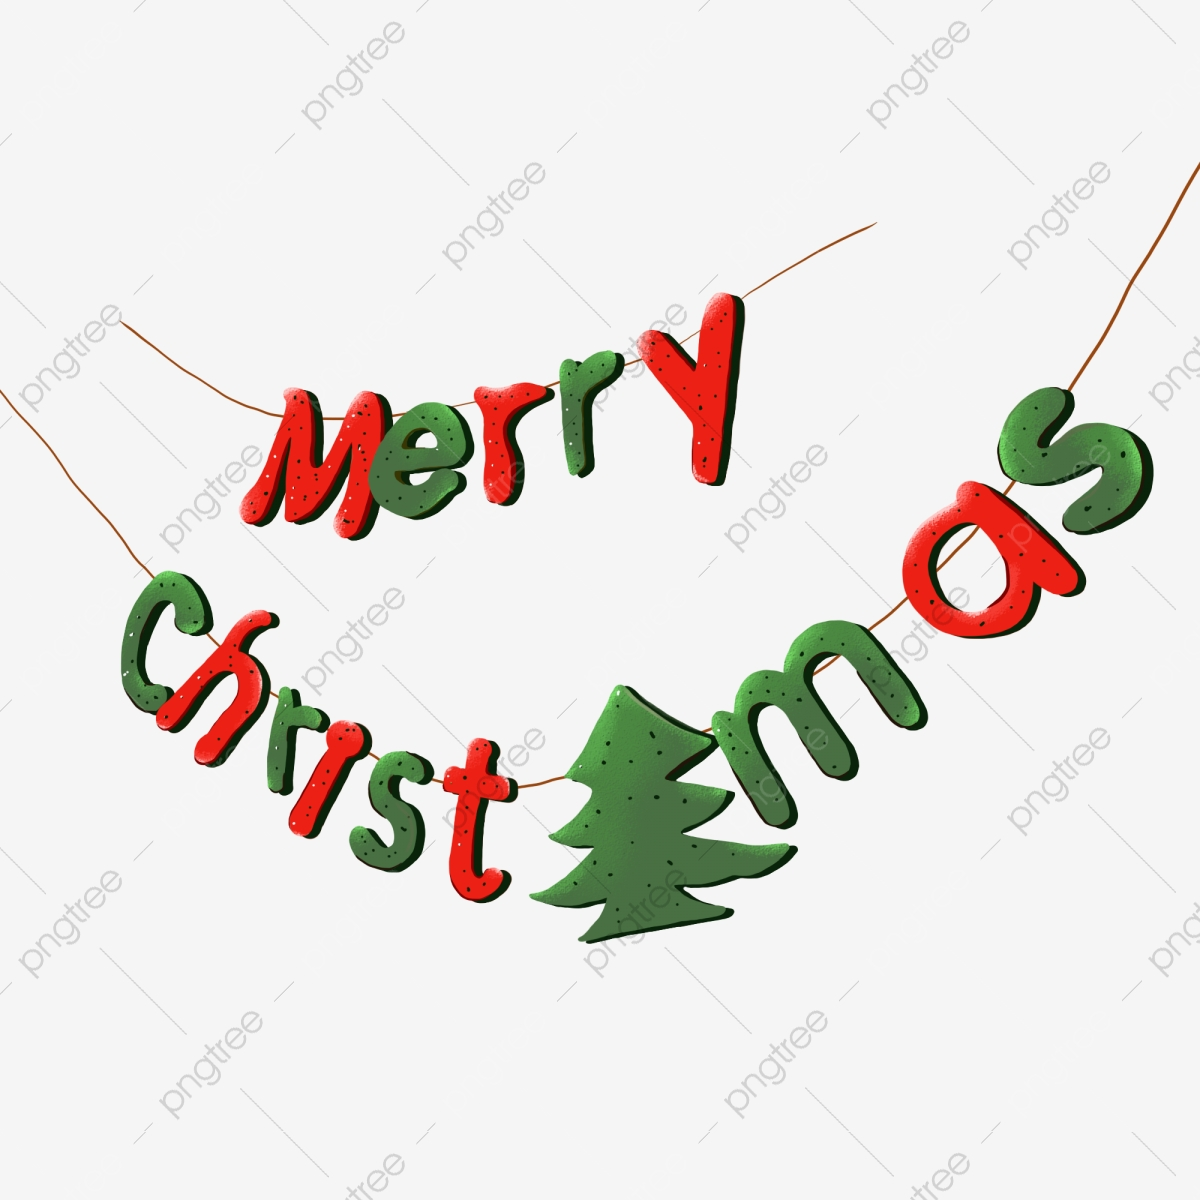 Red Merry Christmas In English Font, Red, Merry Christmas, English